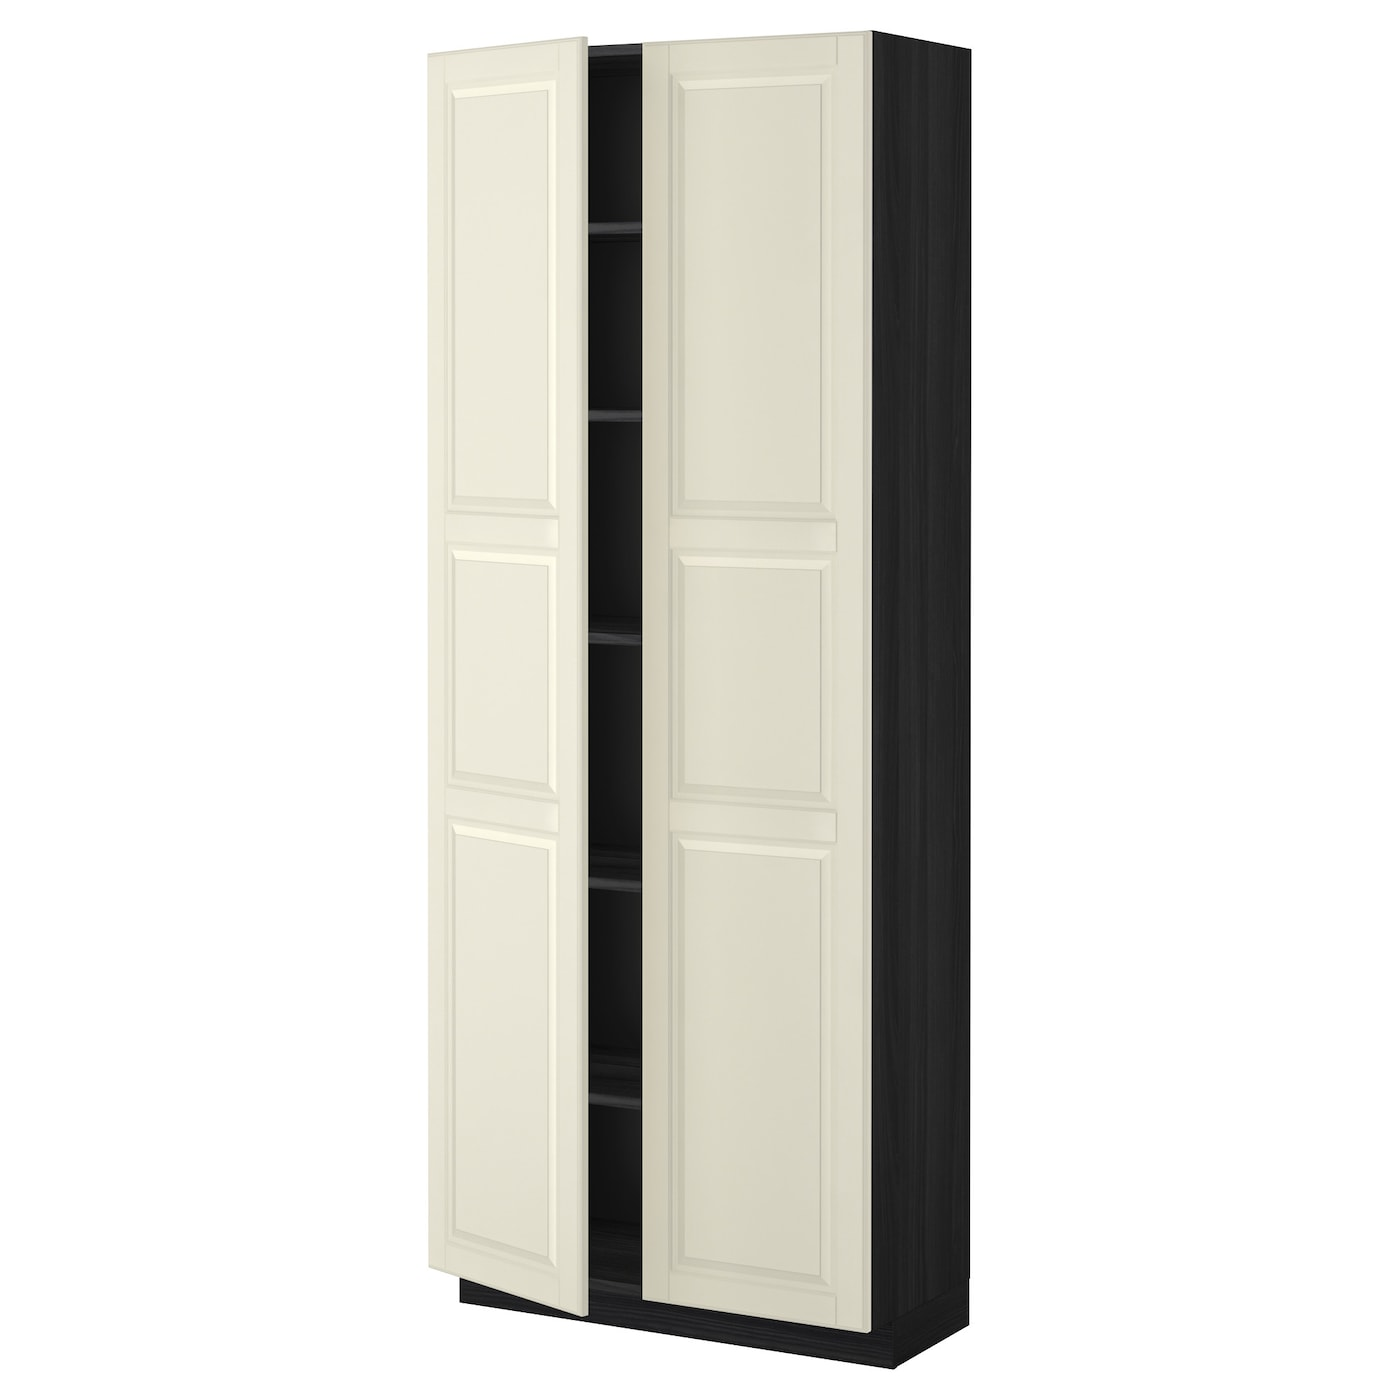 Metod high cabinet with shelves black bodbyn off white for Off the shelf kitchen units